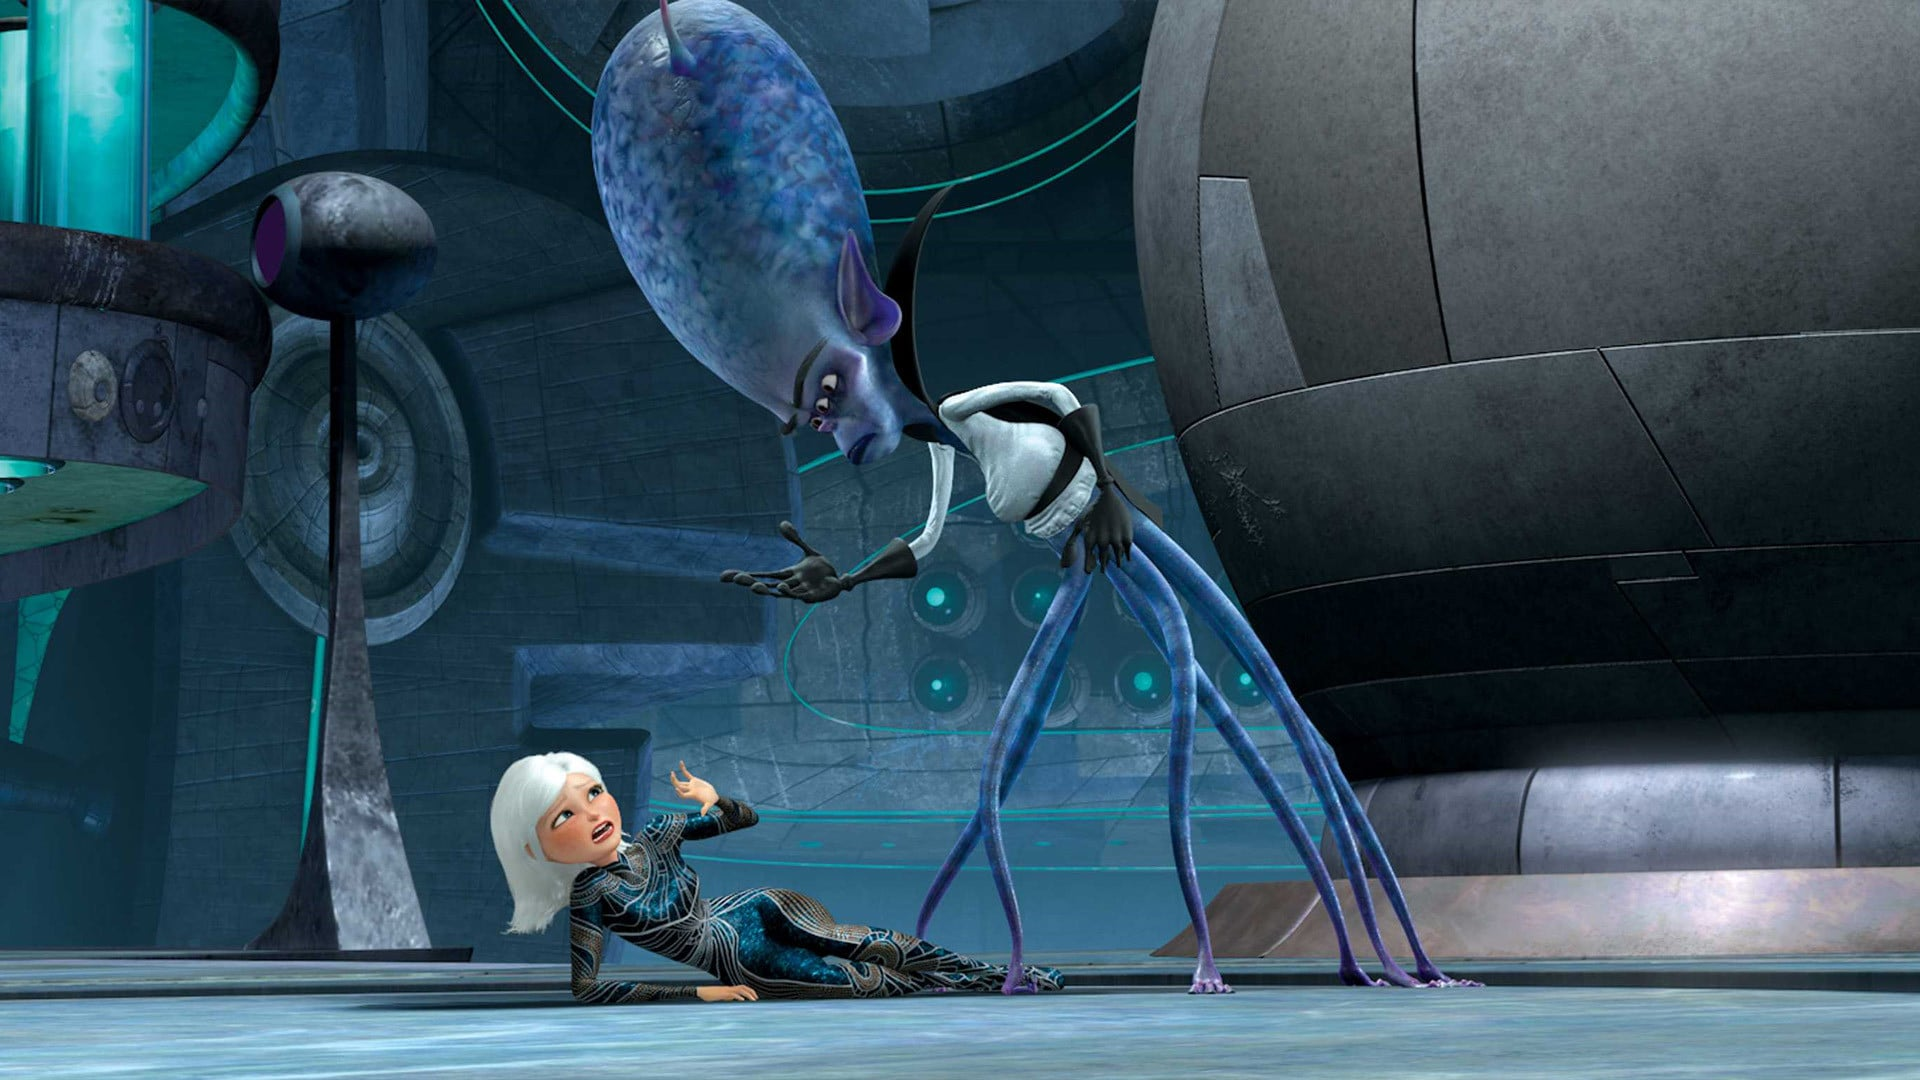 Susan Murphy (voiced by Reese Witherspoon) menaced by intergalactic tyrant Gallaxhar (voiced by Rainn Wilson) in Monsters vs Aliens (2009)